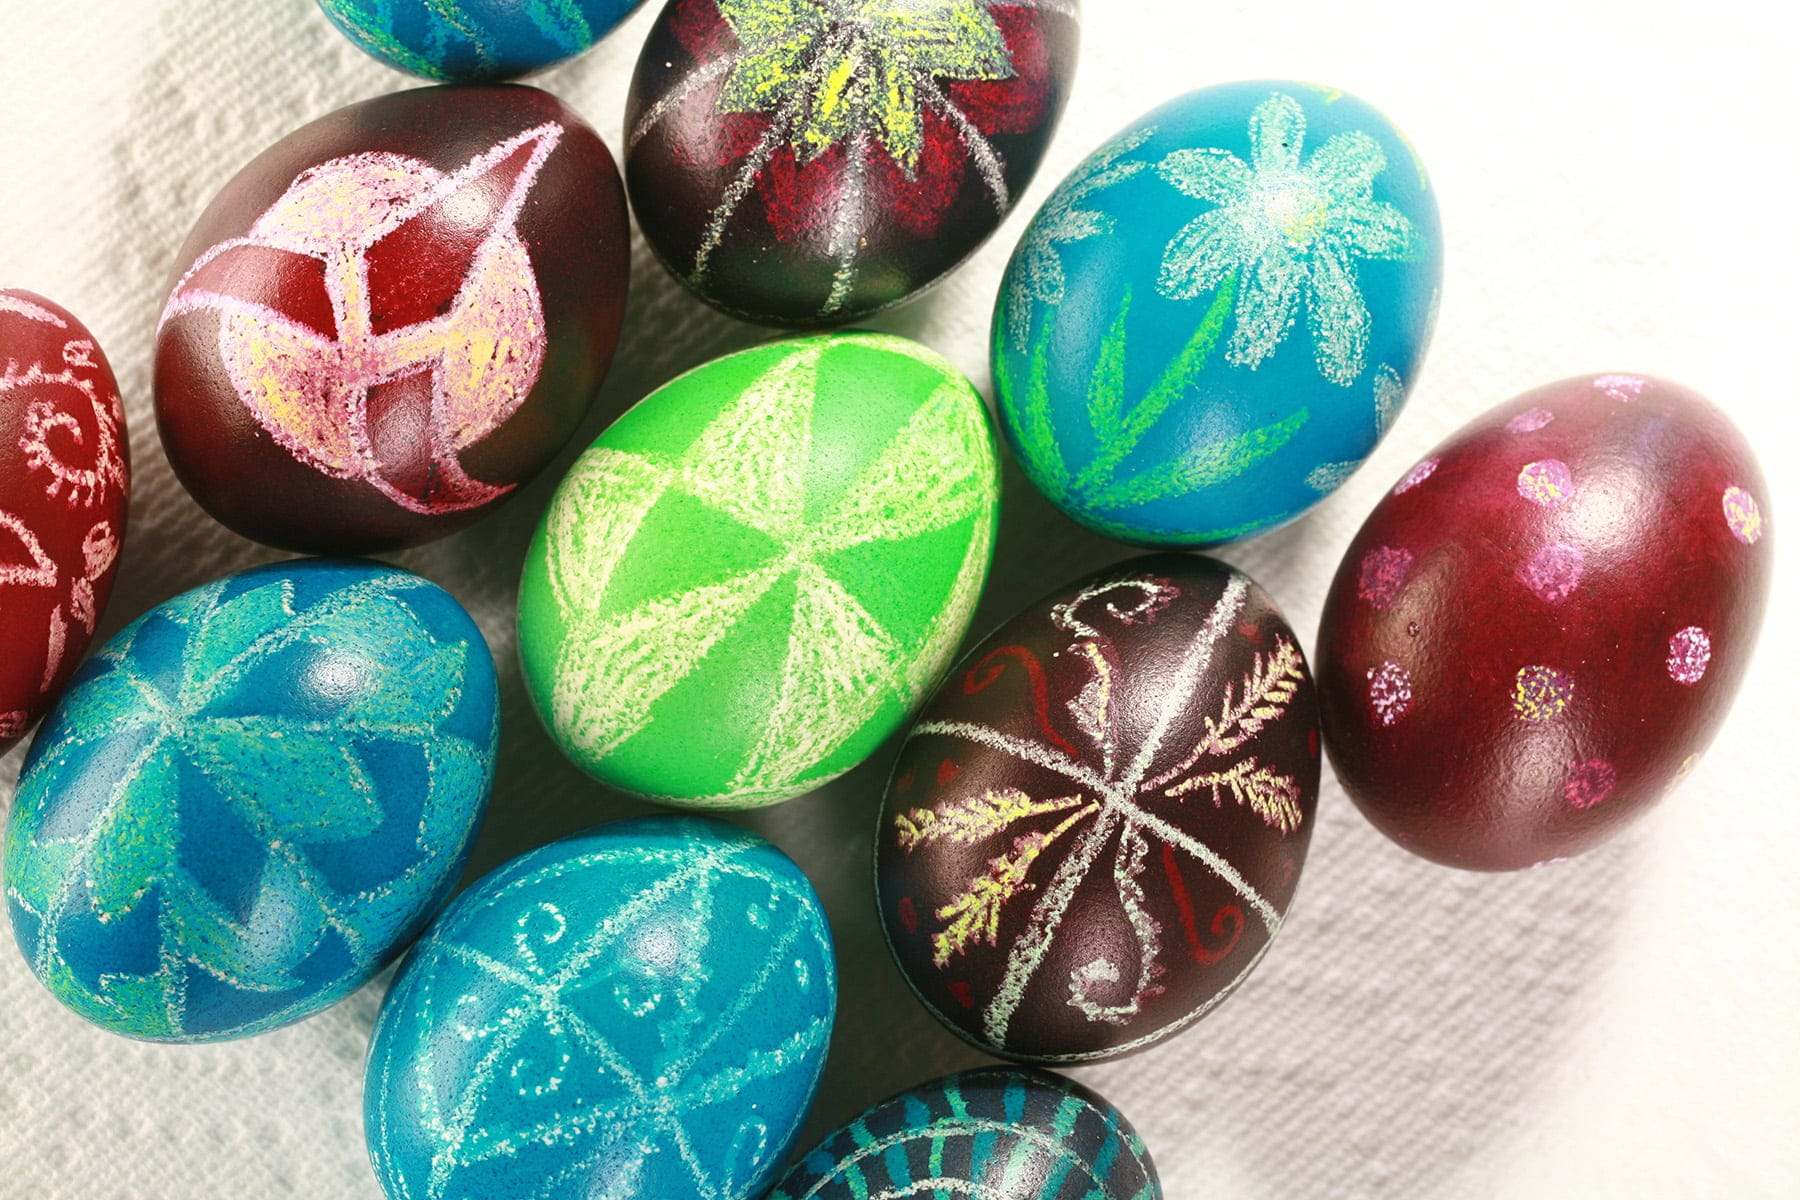 Several brightly coloured wax resist dyed pysanky easter eggs, on a white background.